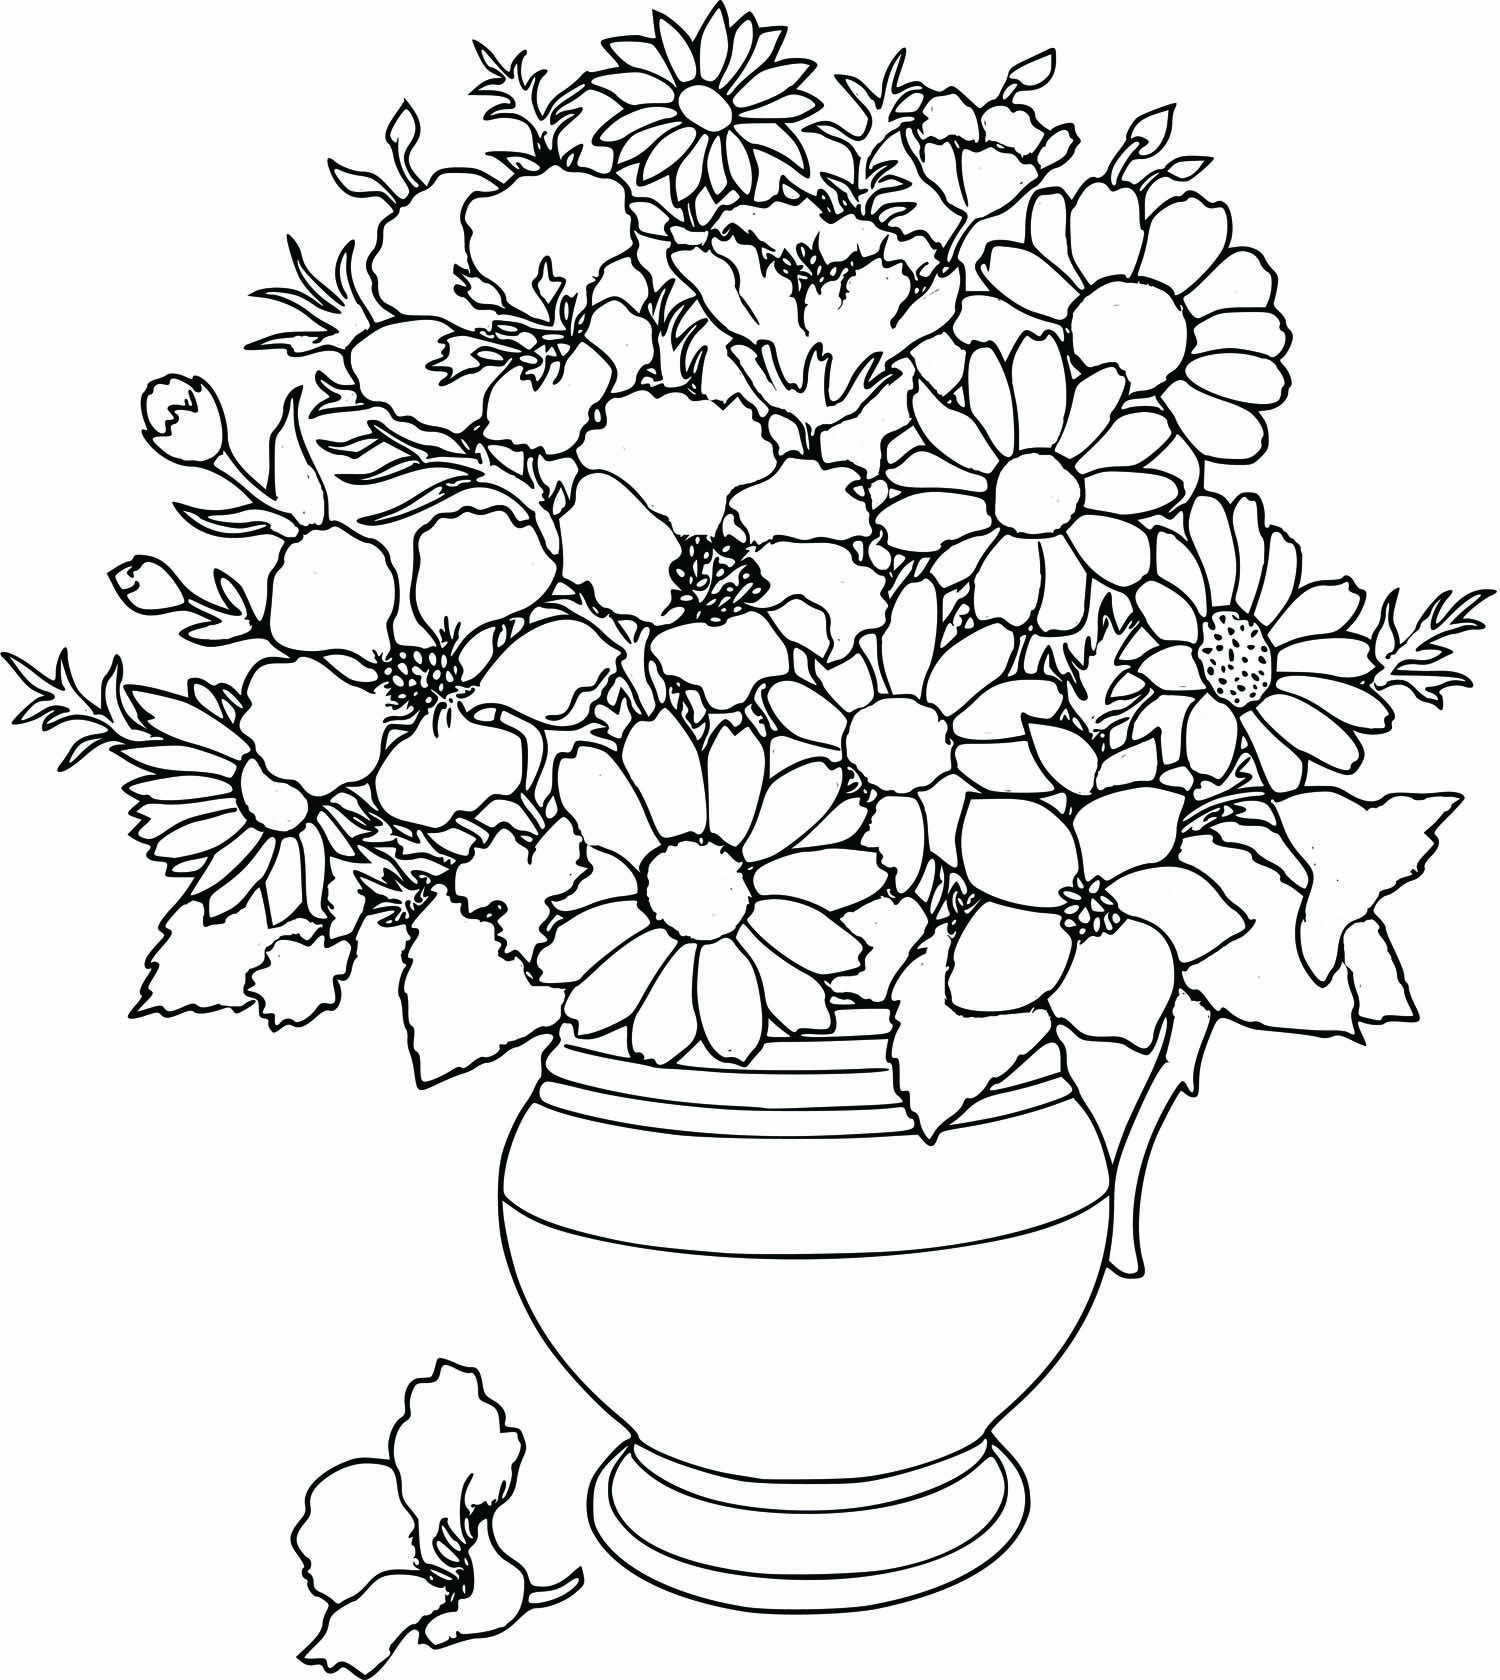 Mothers Day Flowers Coloring Pages With Images